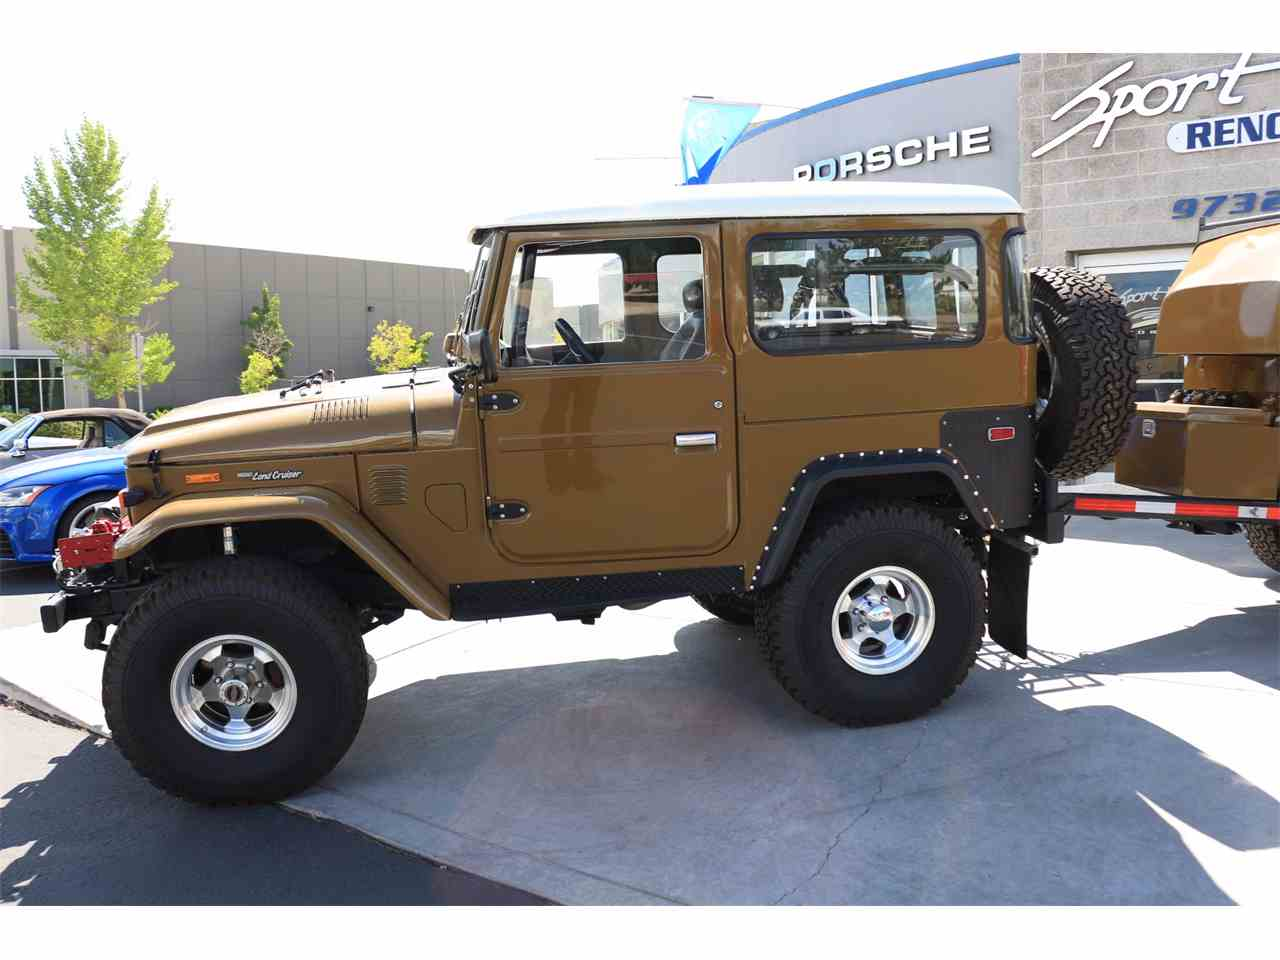 Large Picture of '75 Toyota Land Cruiser 4X4 with Trailer Offered by Sport Haus Reno - LVUD